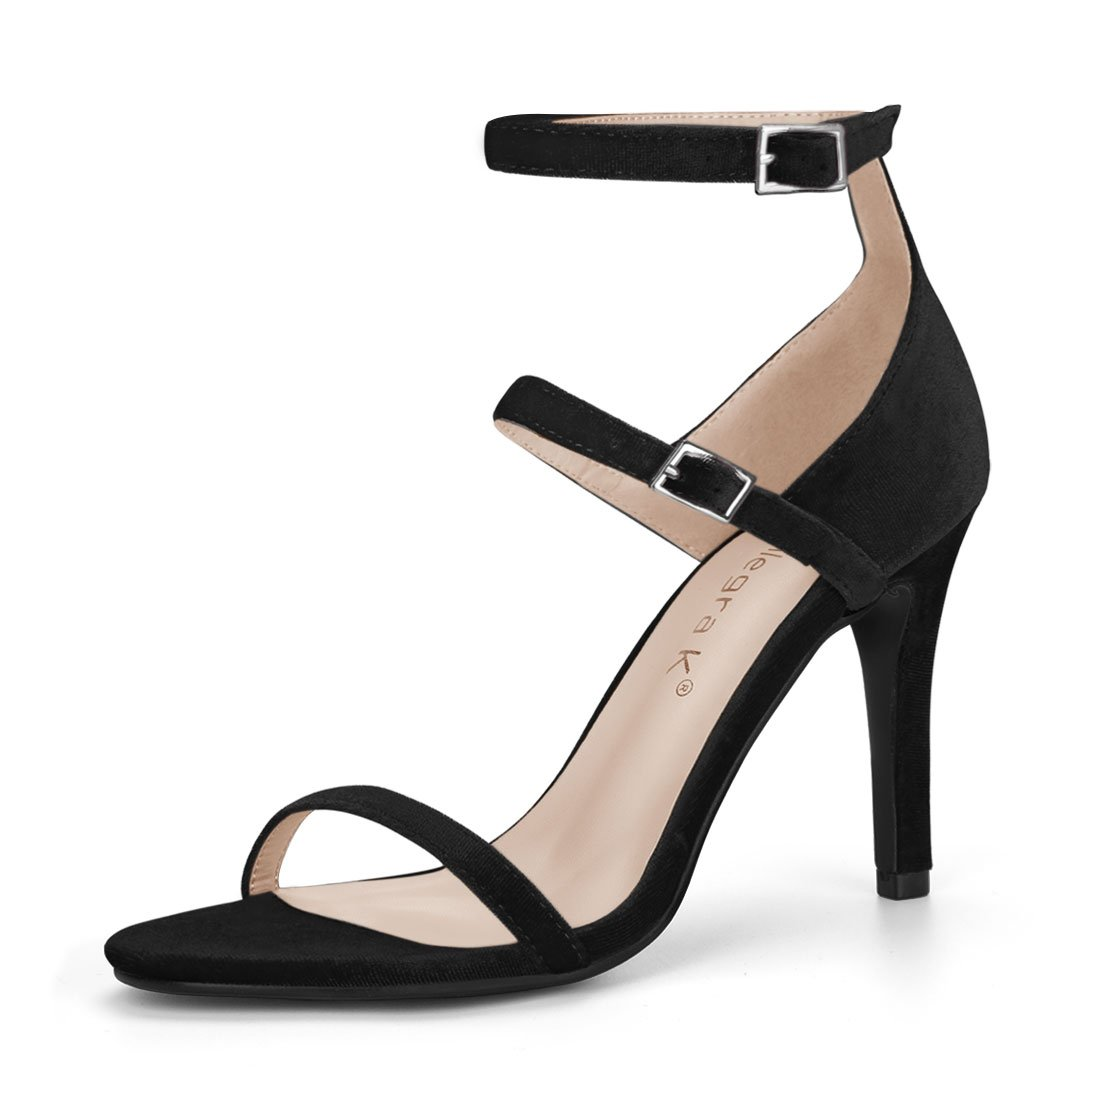 d98604b6a6e0a0 Allegra K Women s Triple Straps High Heel Sandals